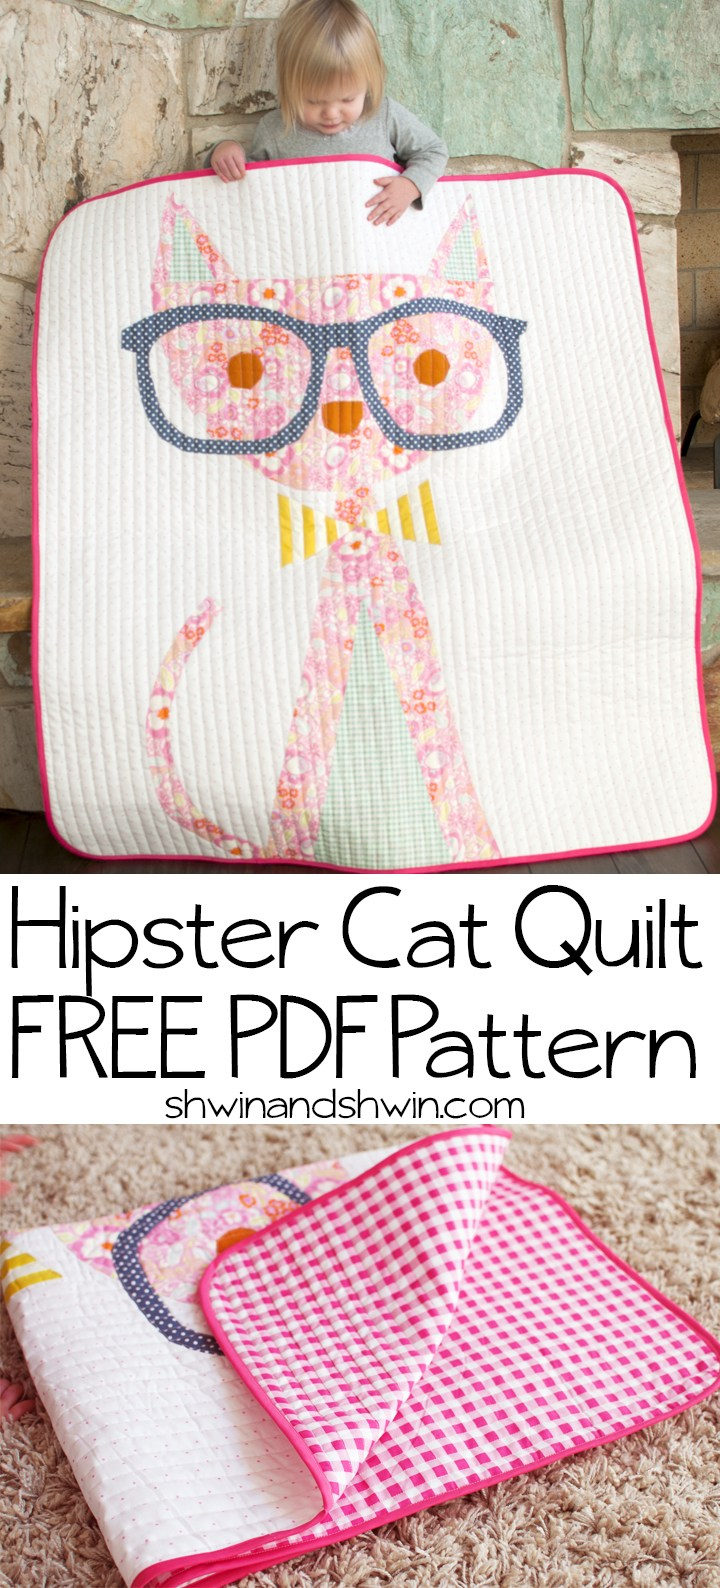 How to Sew a Hipster Cat Quilt?